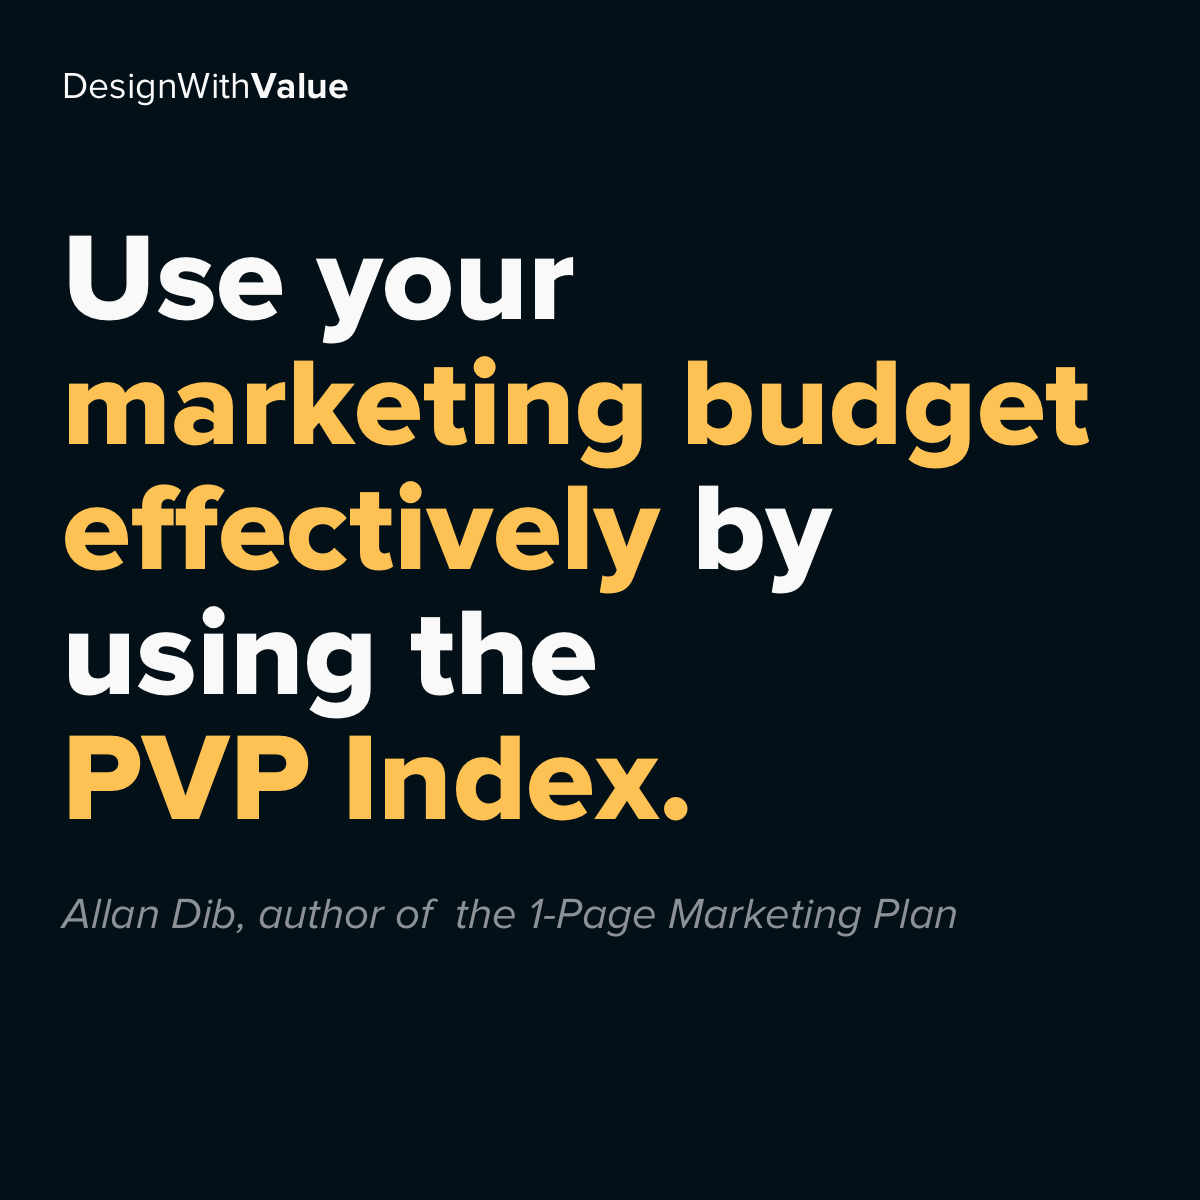 Use your marketing budget effectively by using the PVP index.